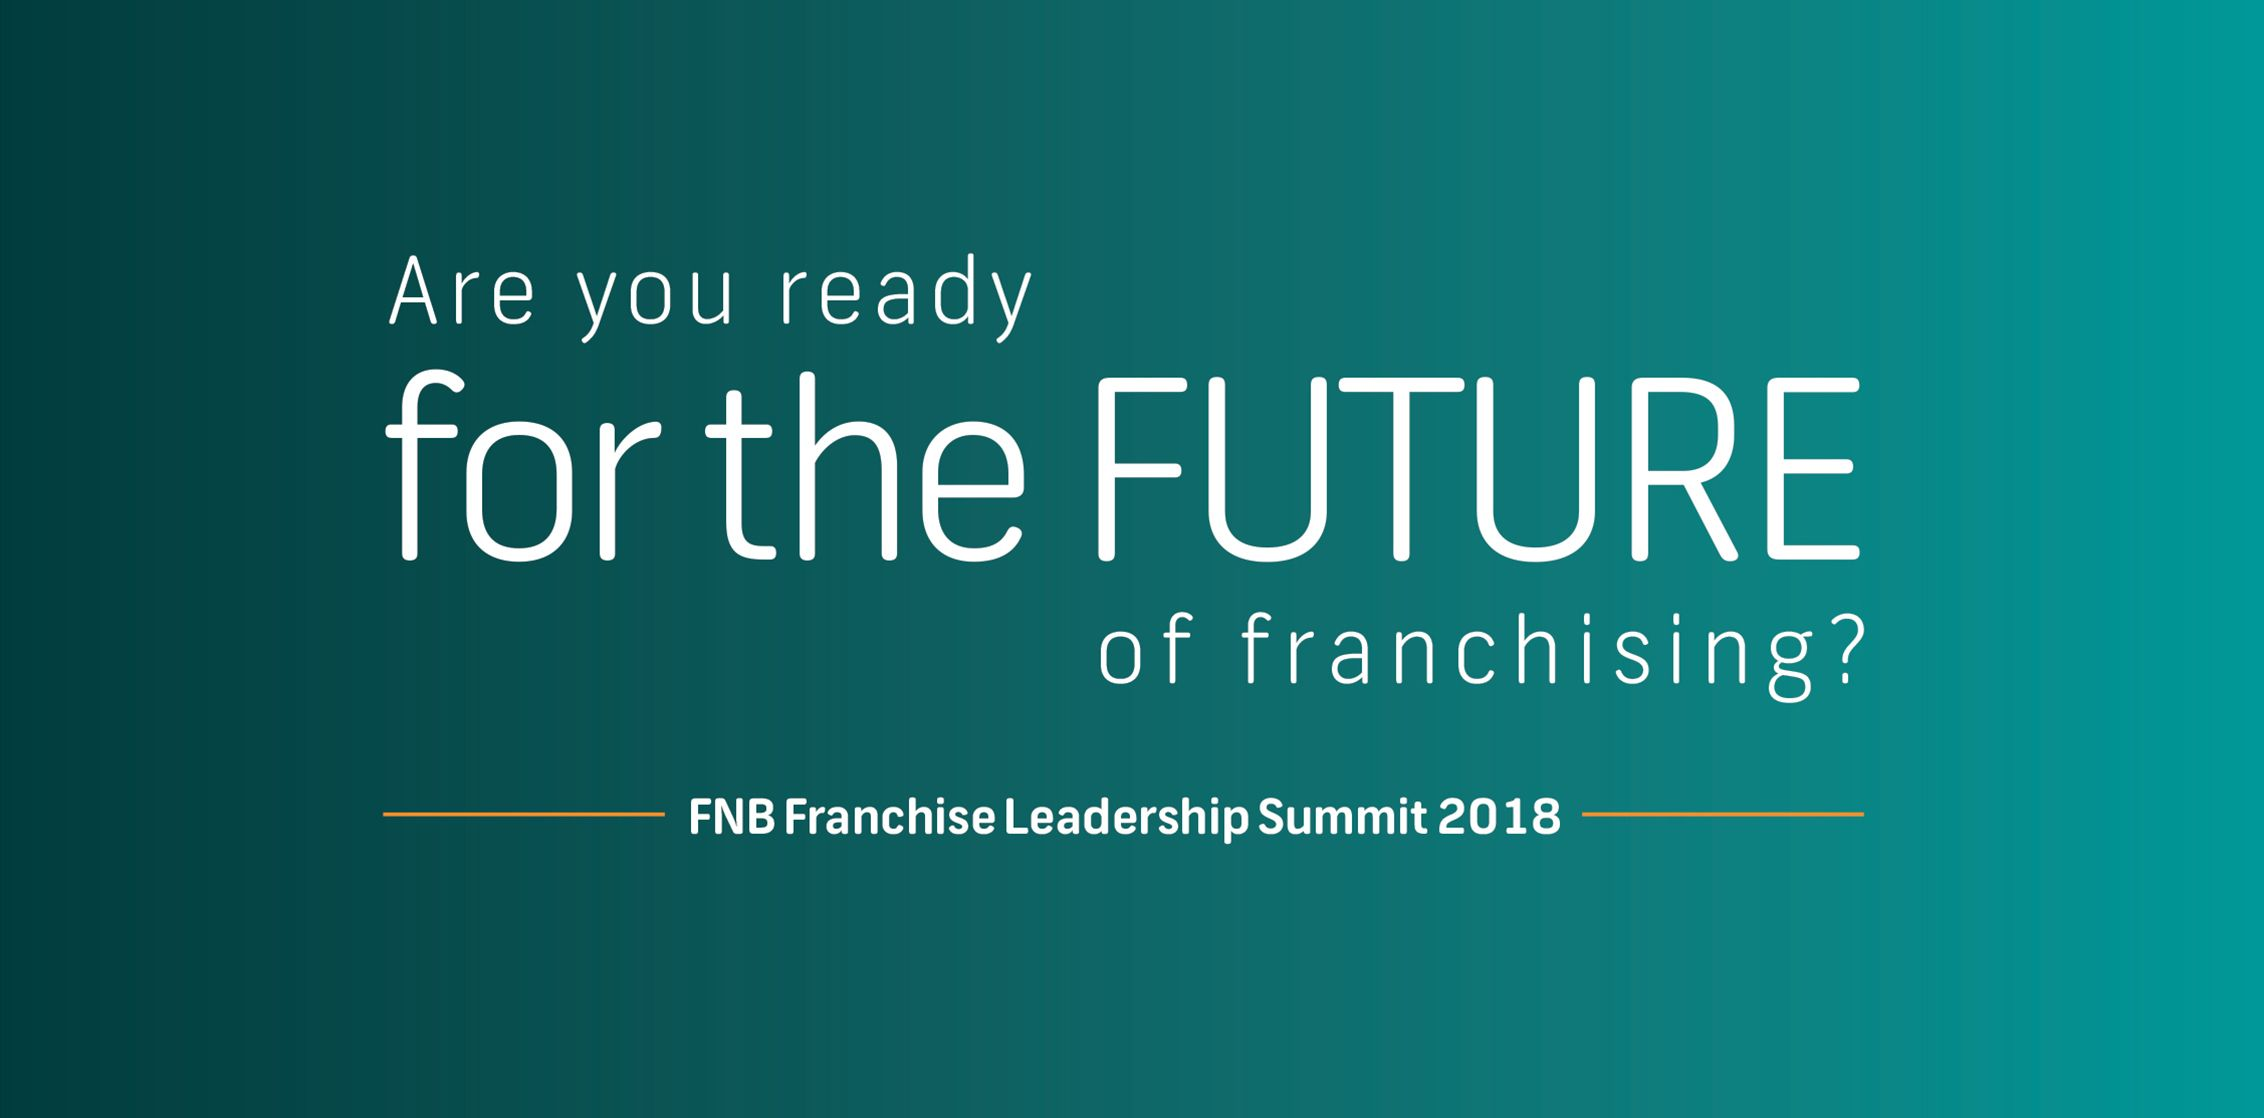 Are You Ready For The Future Of Franchising